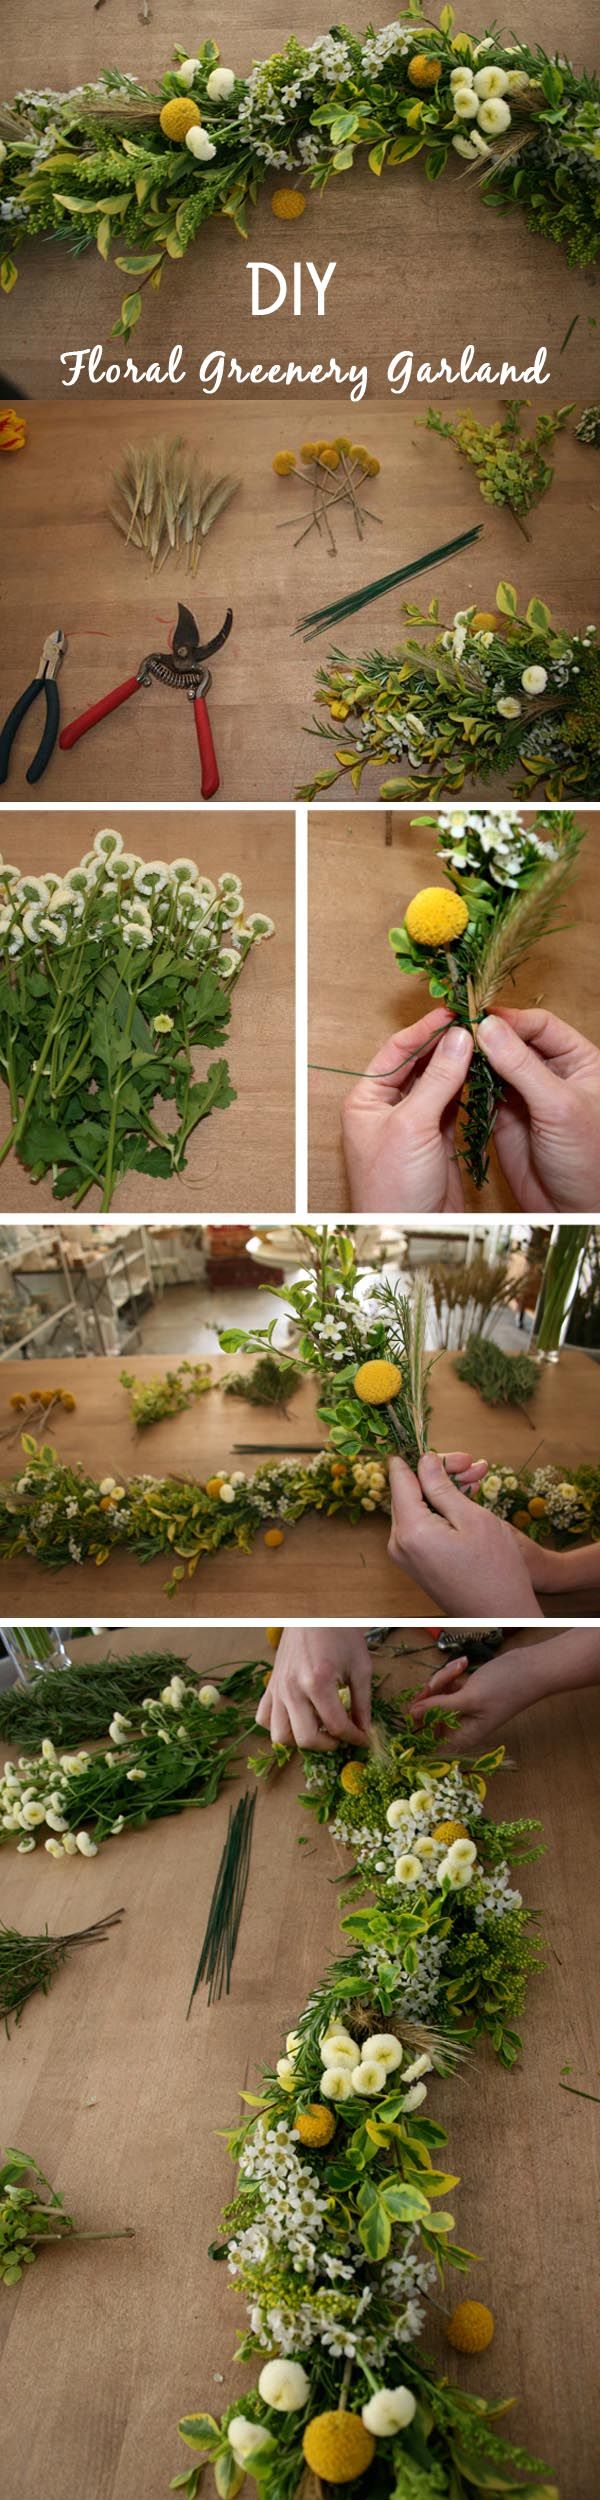 8 effortless diy wedding ideas with tutorials do it yourself floral greenery garland for weddings solutioingenieria Images